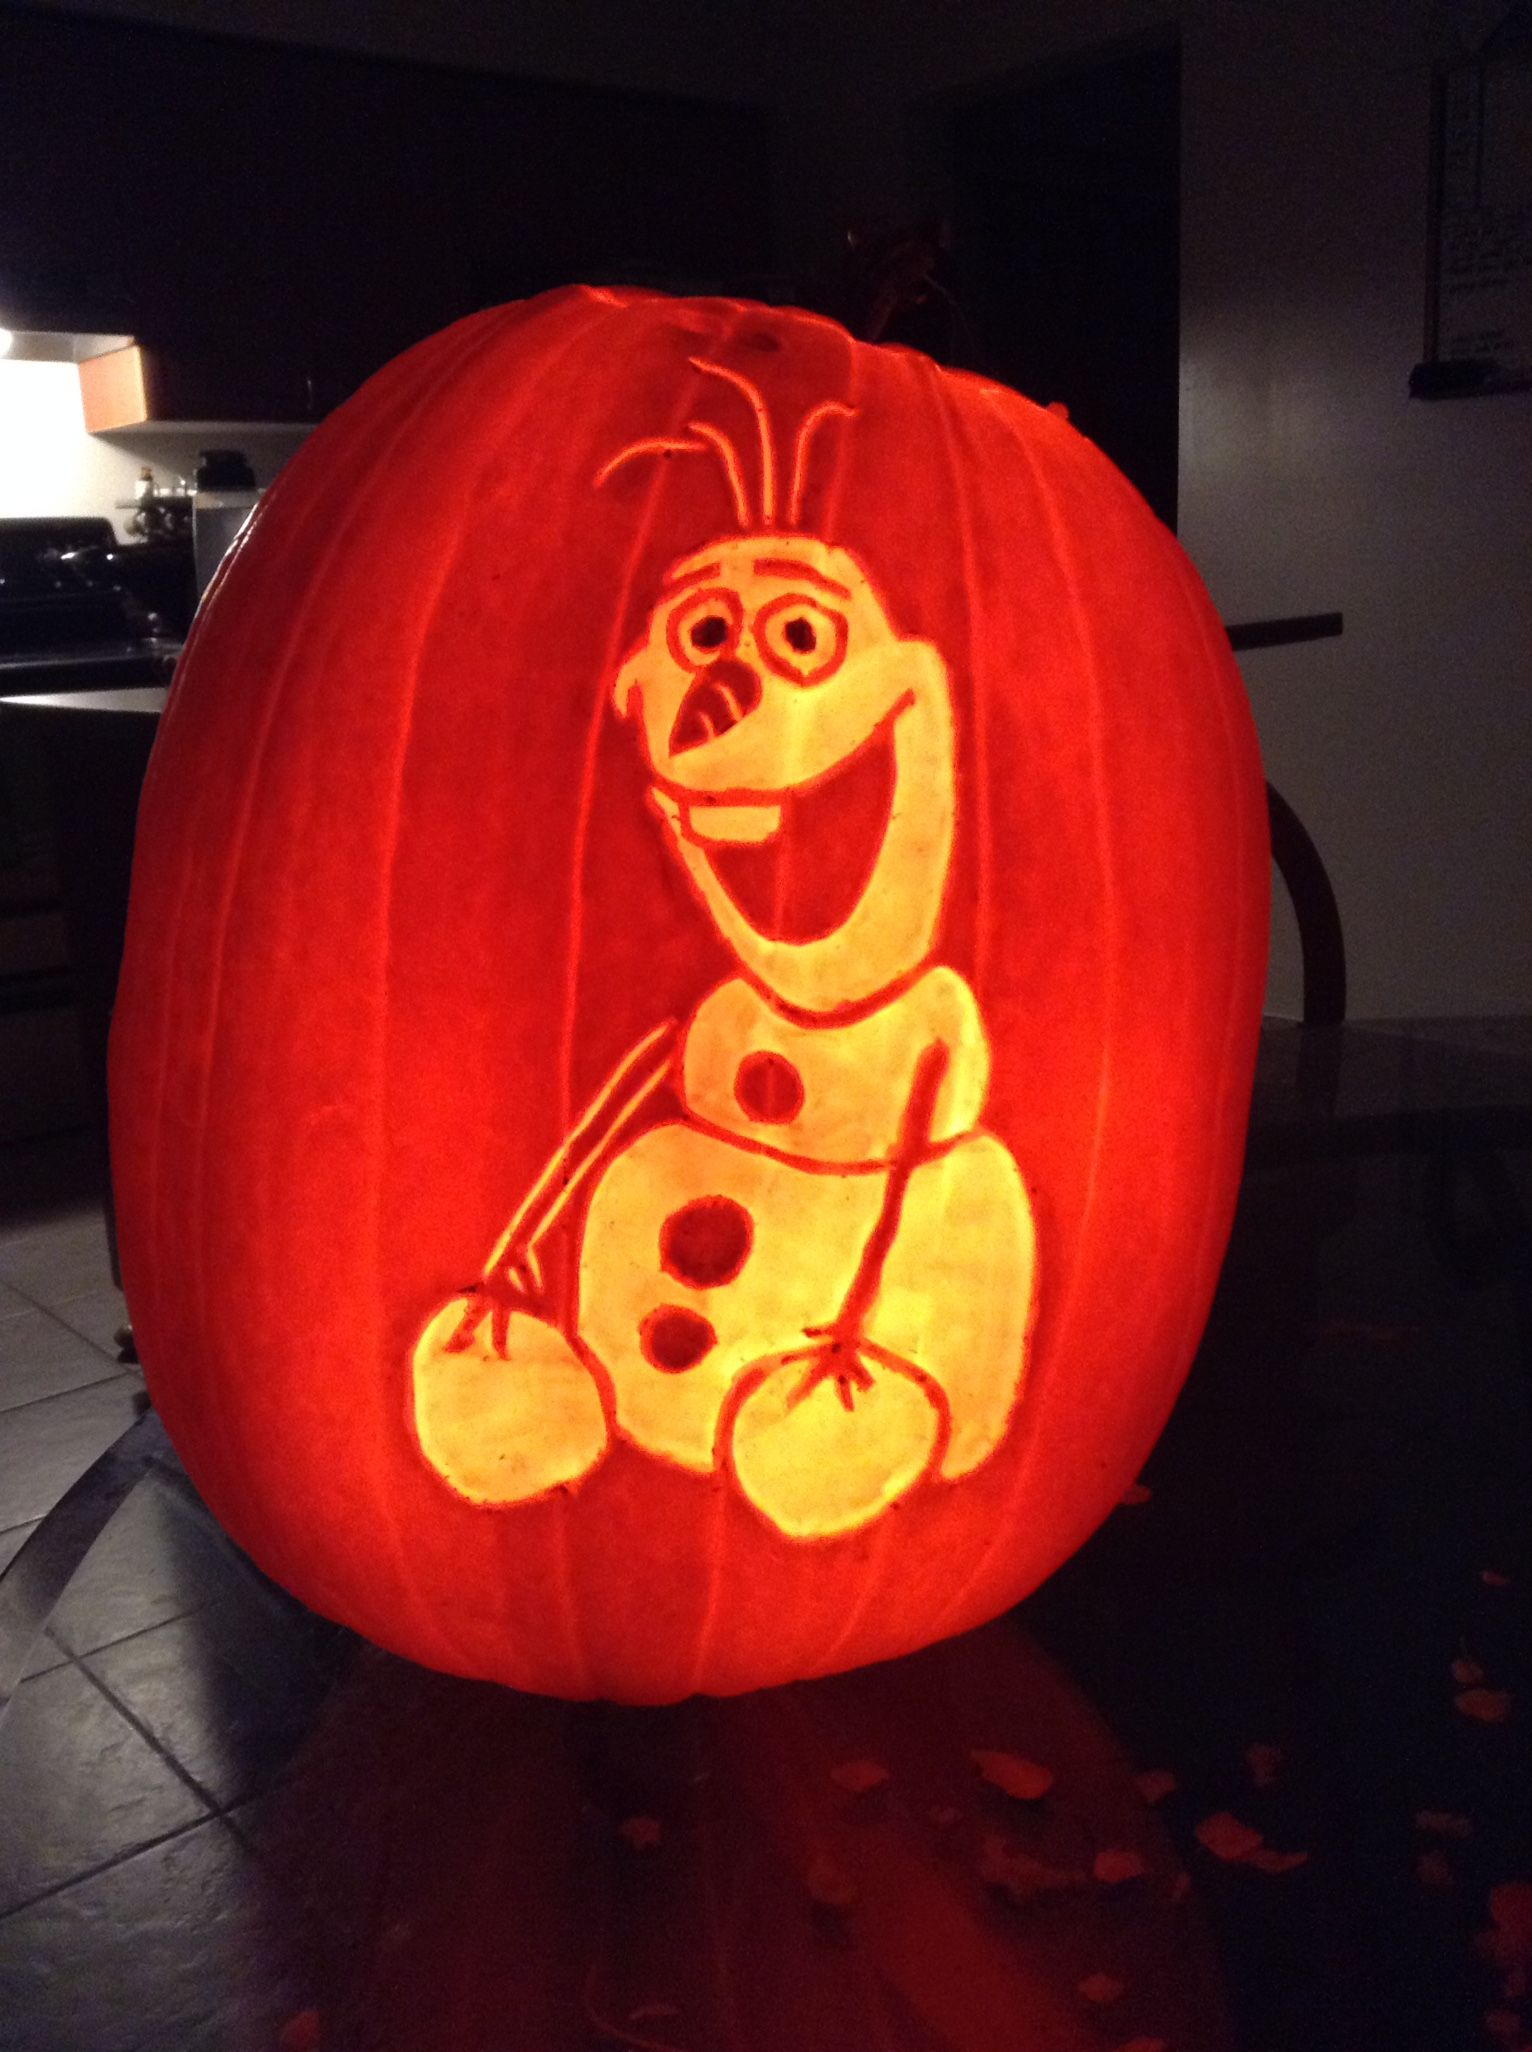 Pumpkin carving frozenus olaf fall holidays halloween